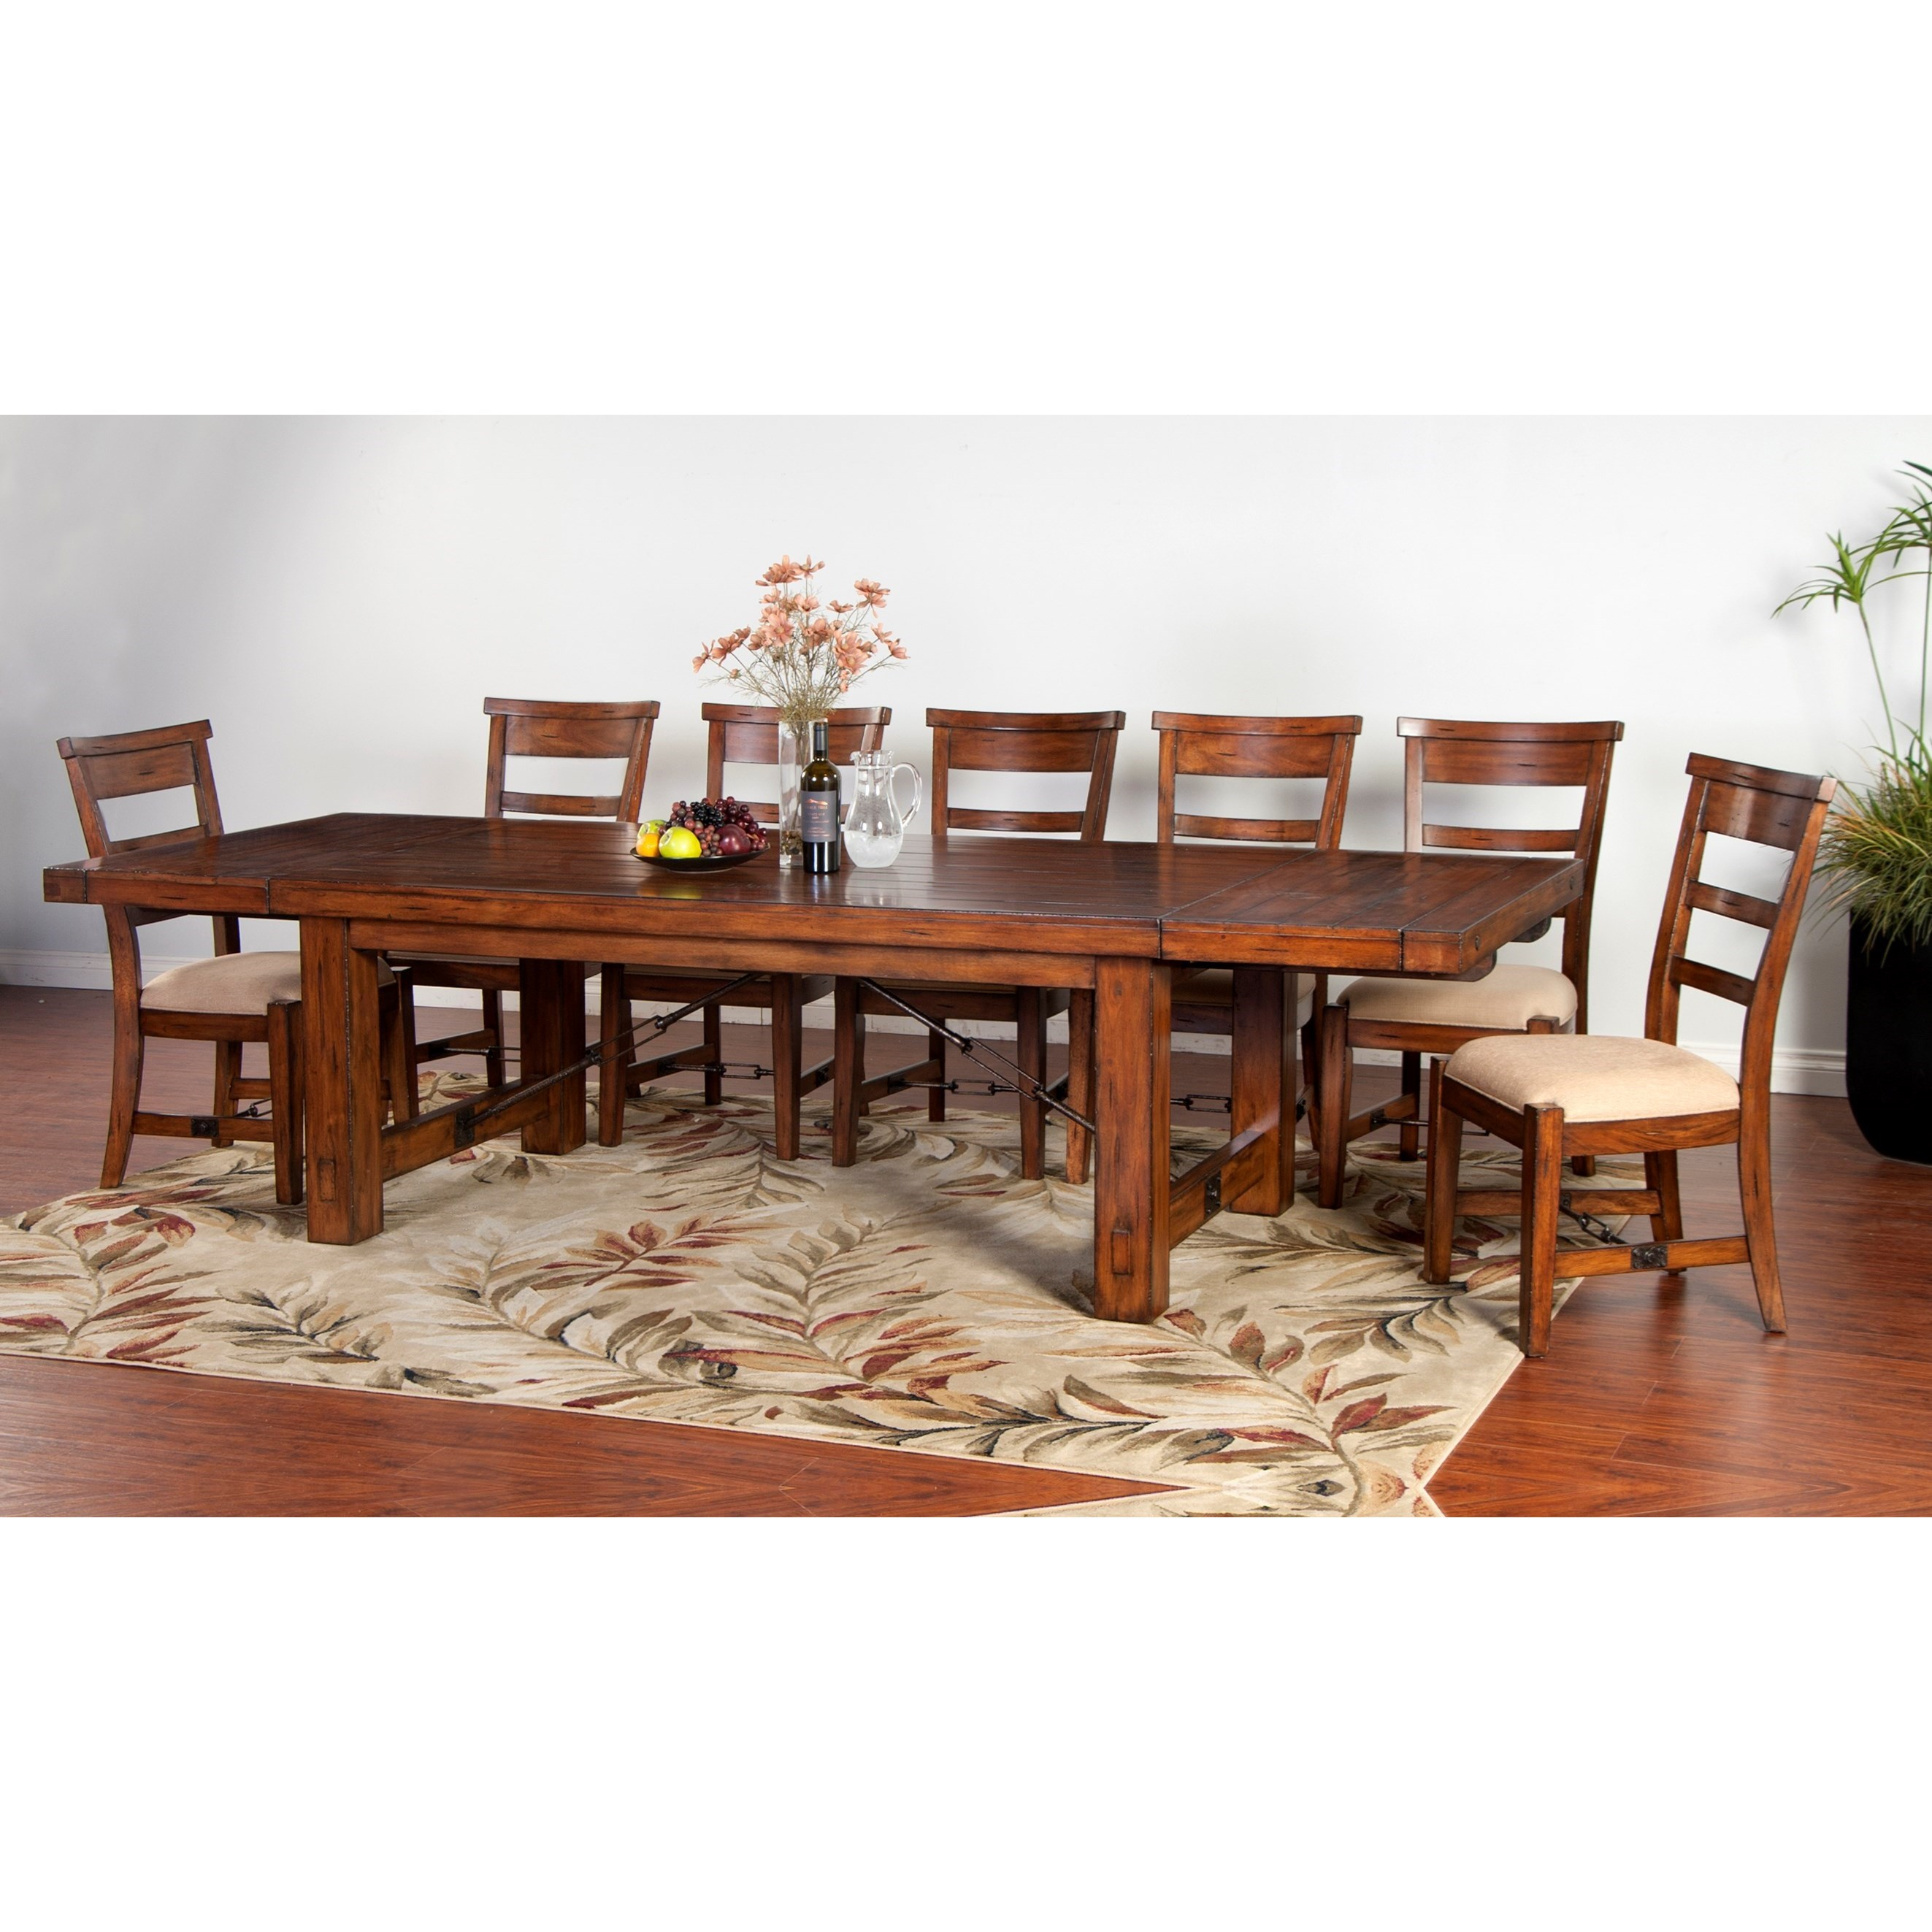 Sunny designs tuscany distressed mahogany extension table fashion furniture dining tables - Tuscany dining room furniture ideas ...